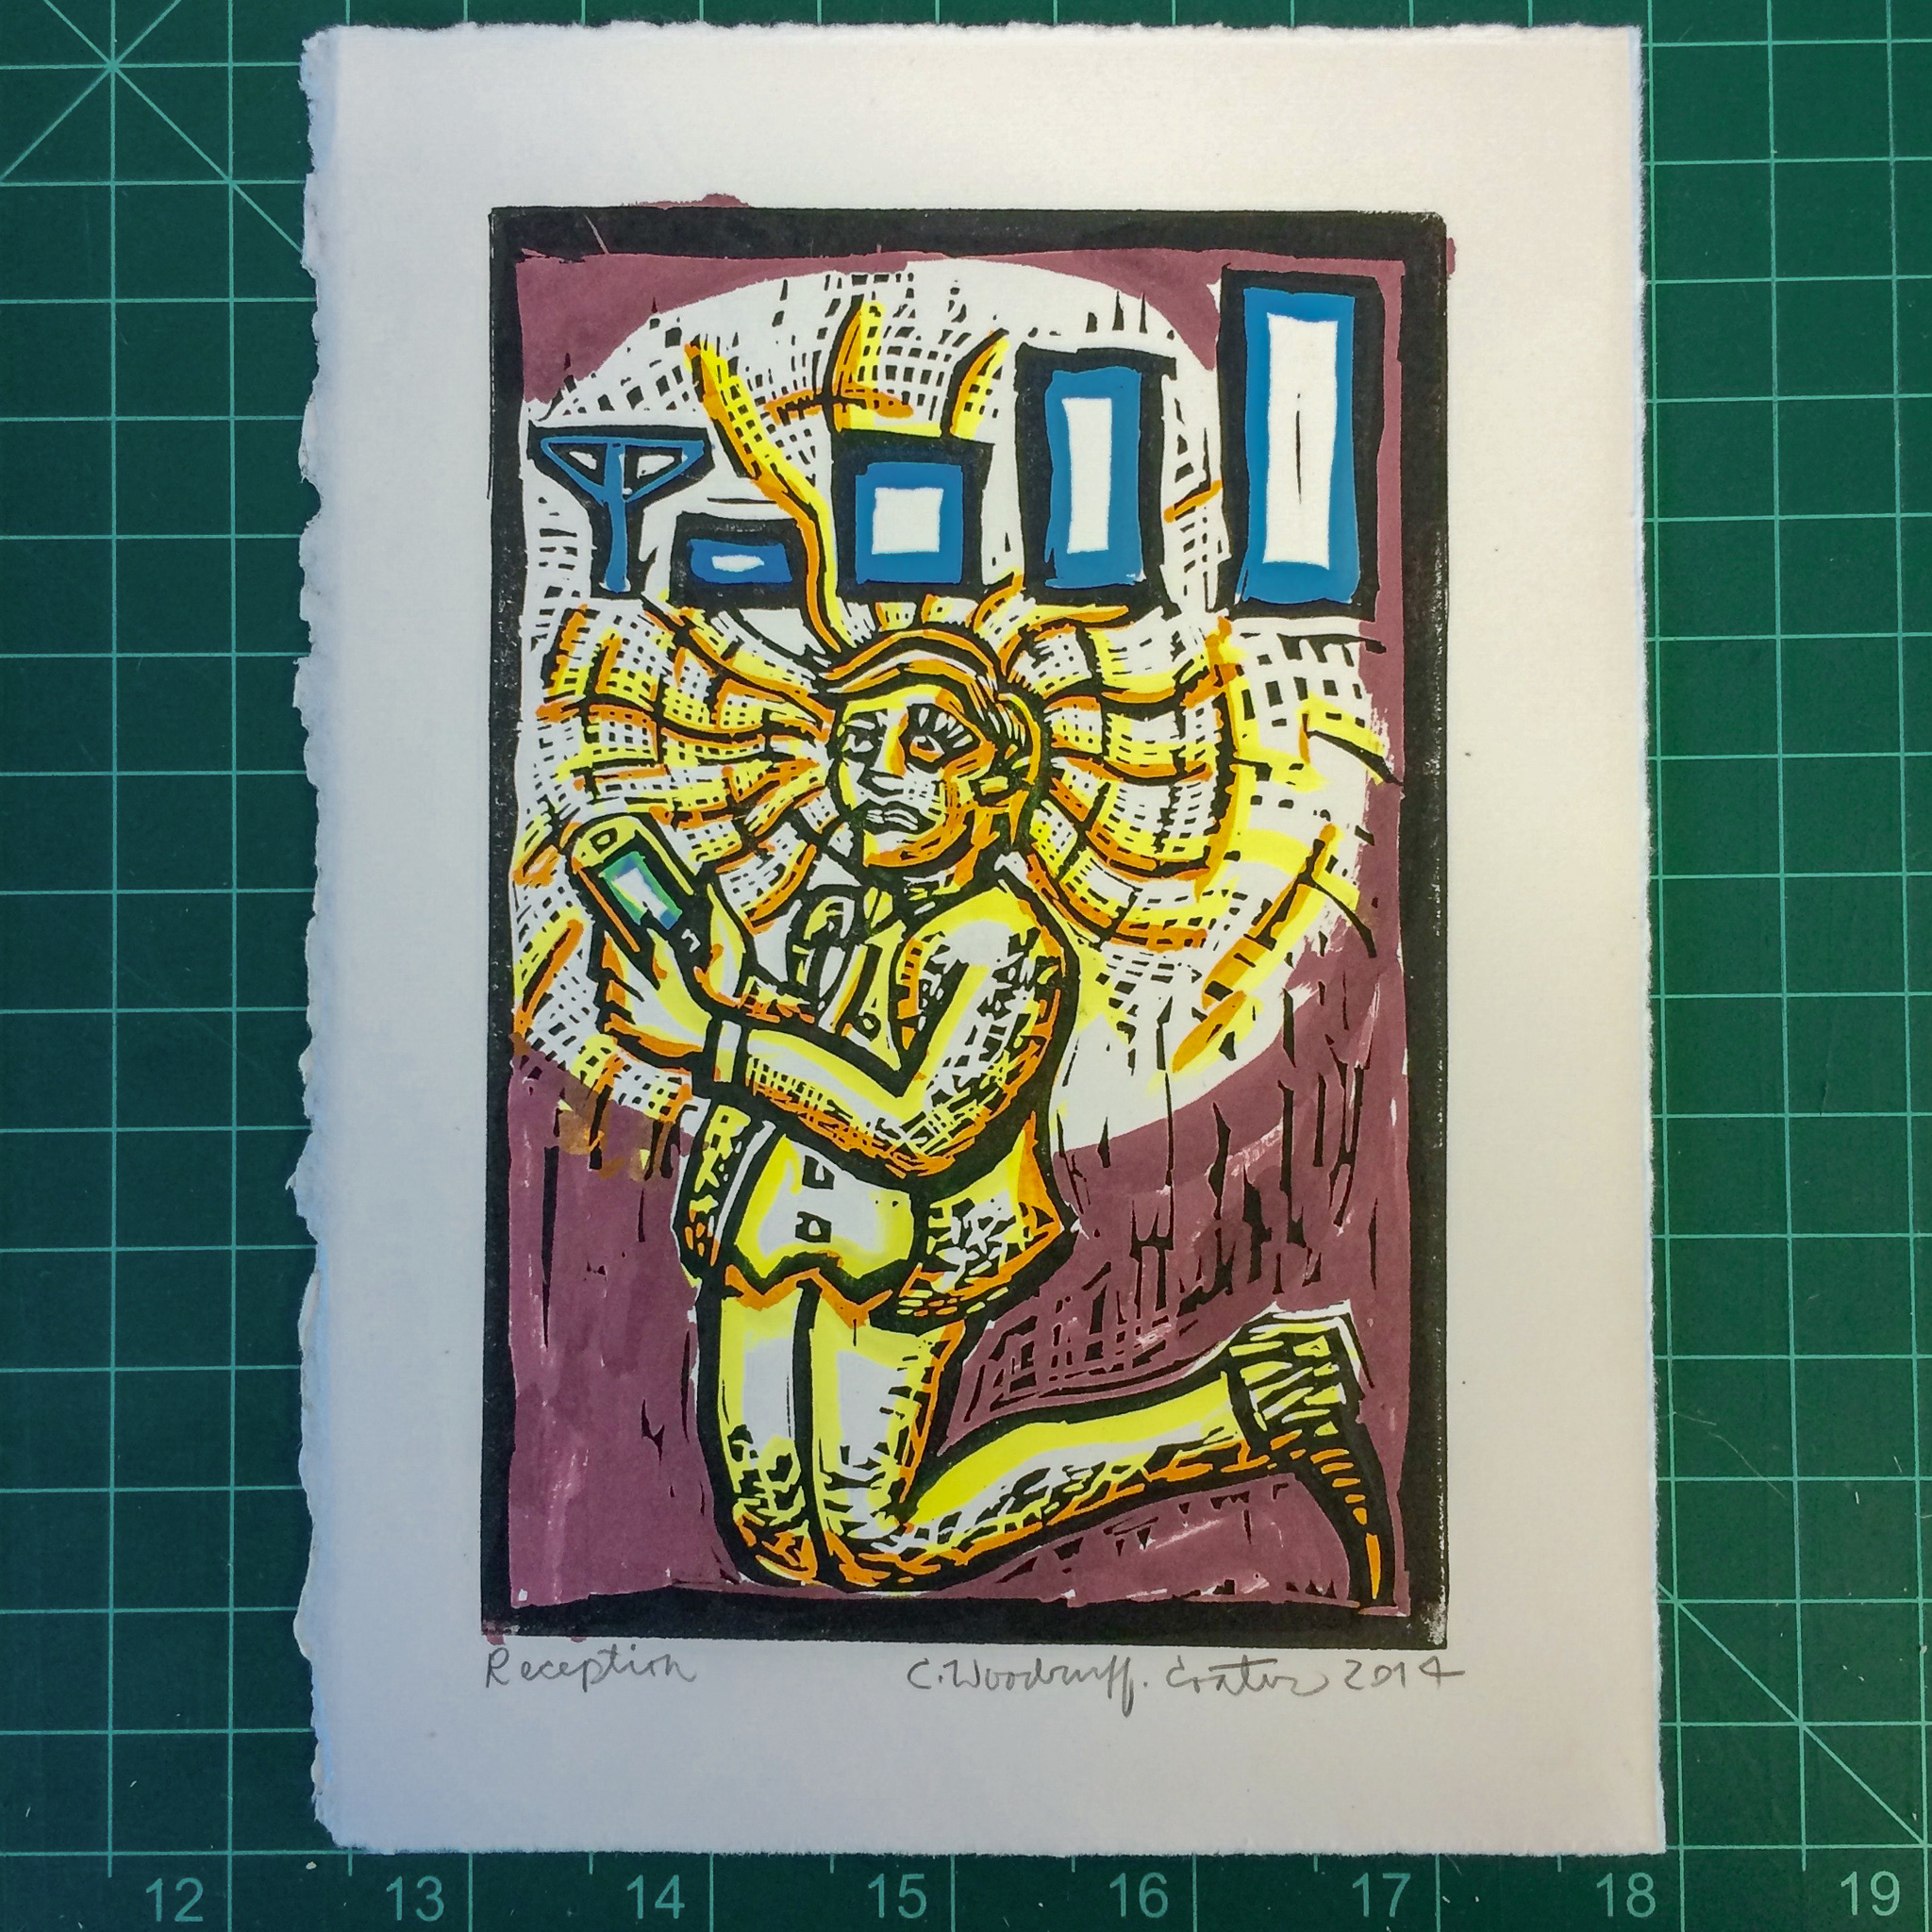 social media - milagro linocuts 04.jpg